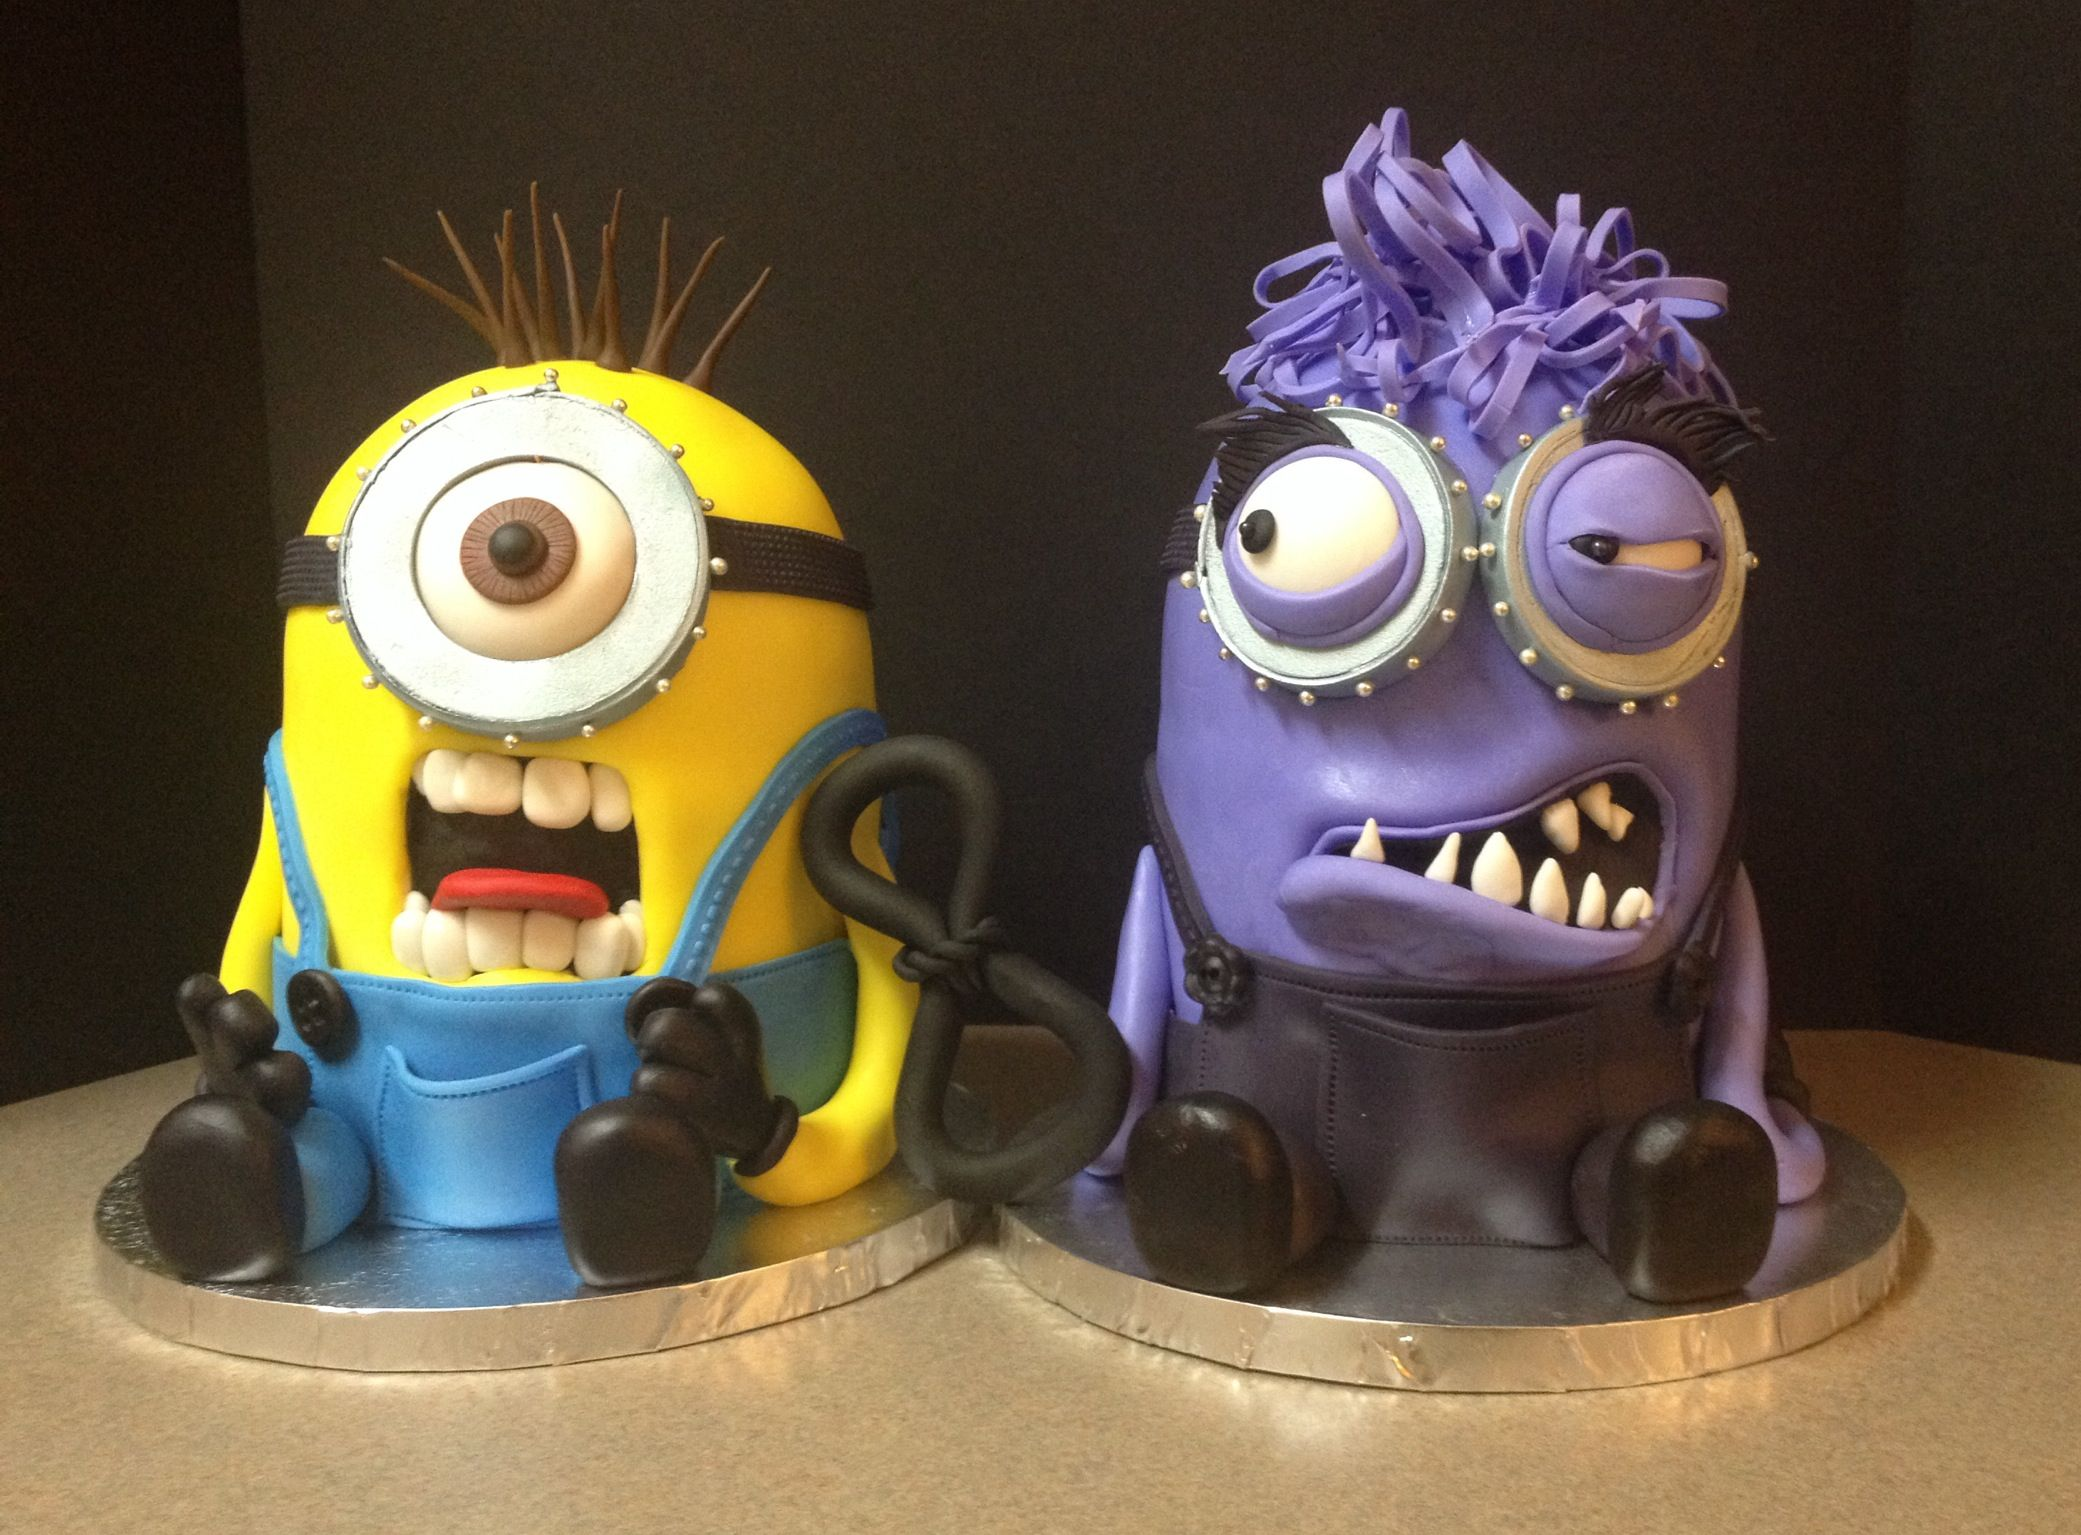 Minion birthday cakes for twins! Loved making this one!